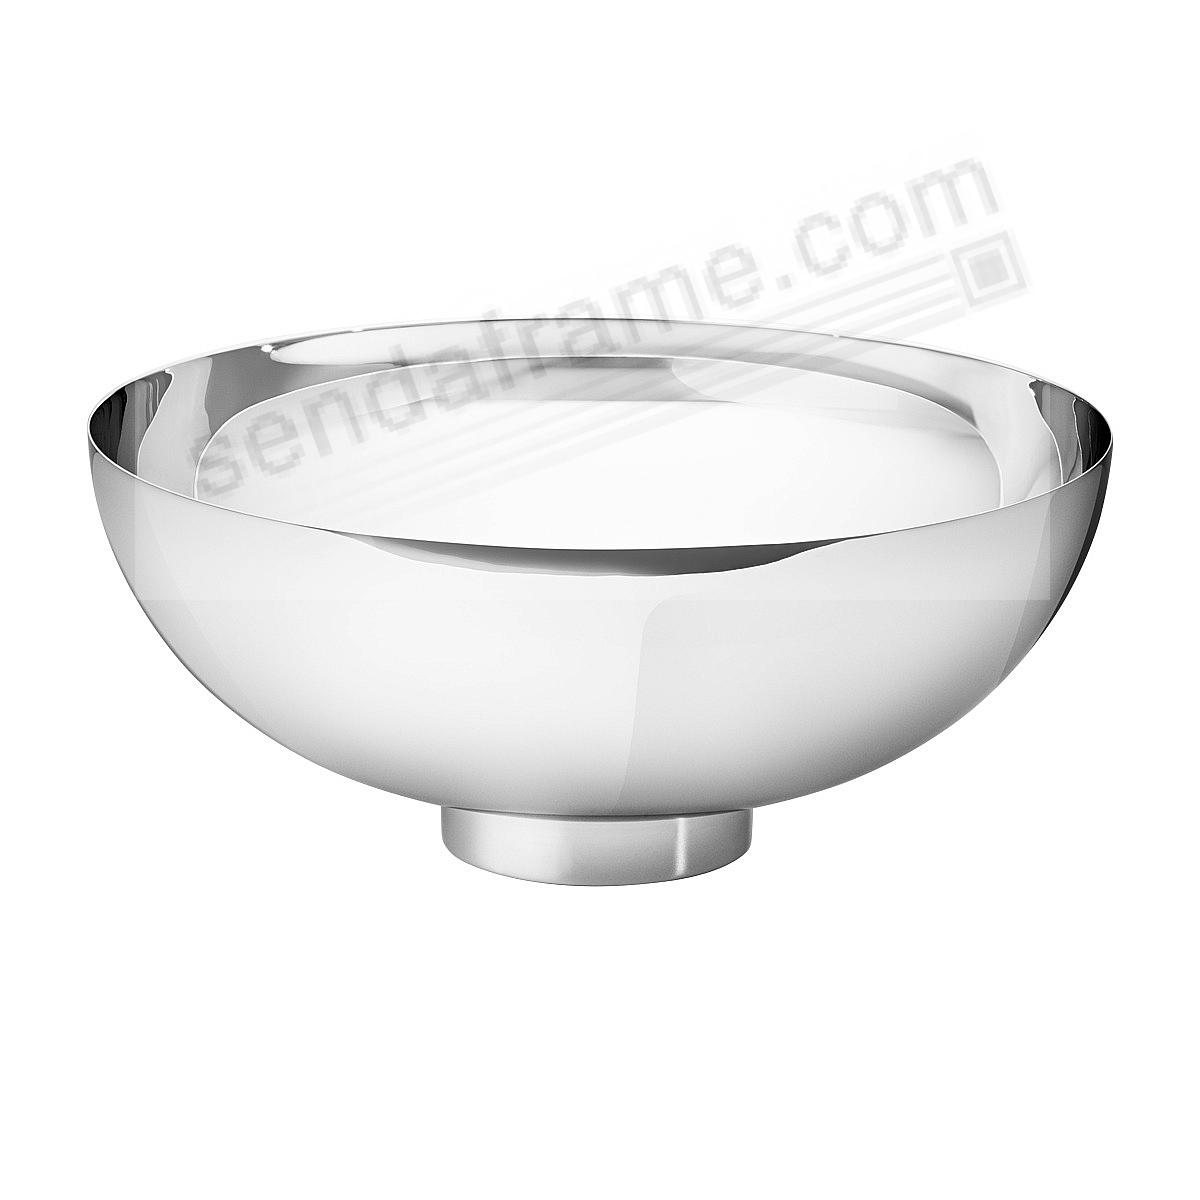 The ILSE BOWL (LG 9in) Stainless Steel by Georg Jensen®